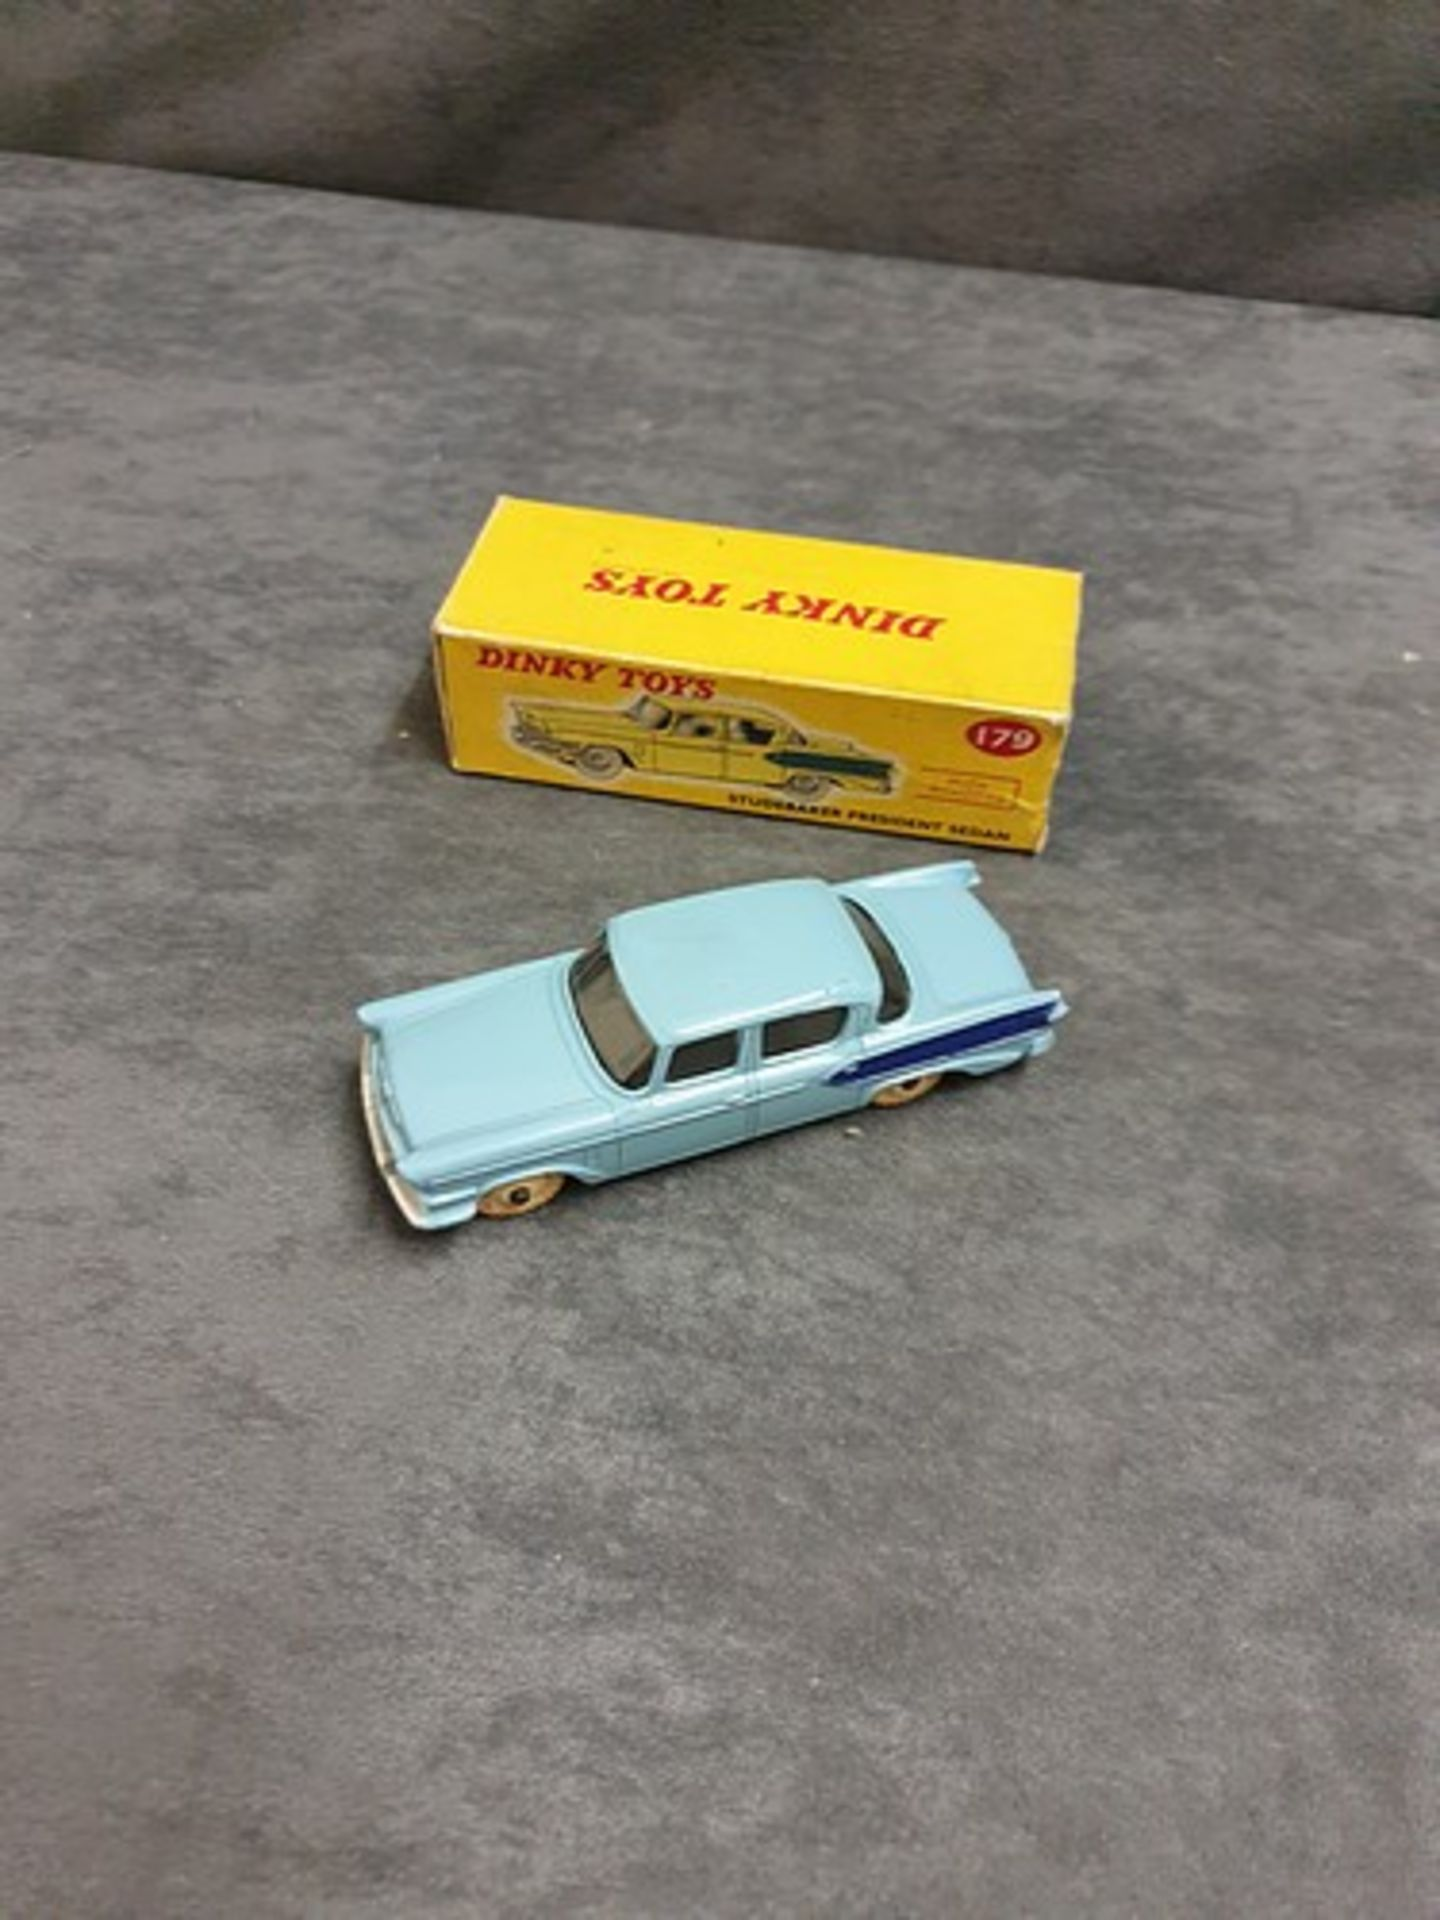 Dinky #179 Studebaker President Sedan In Two Tone Blue With White Wheels Nr Mint Model In Firm Box - Image 3 of 3